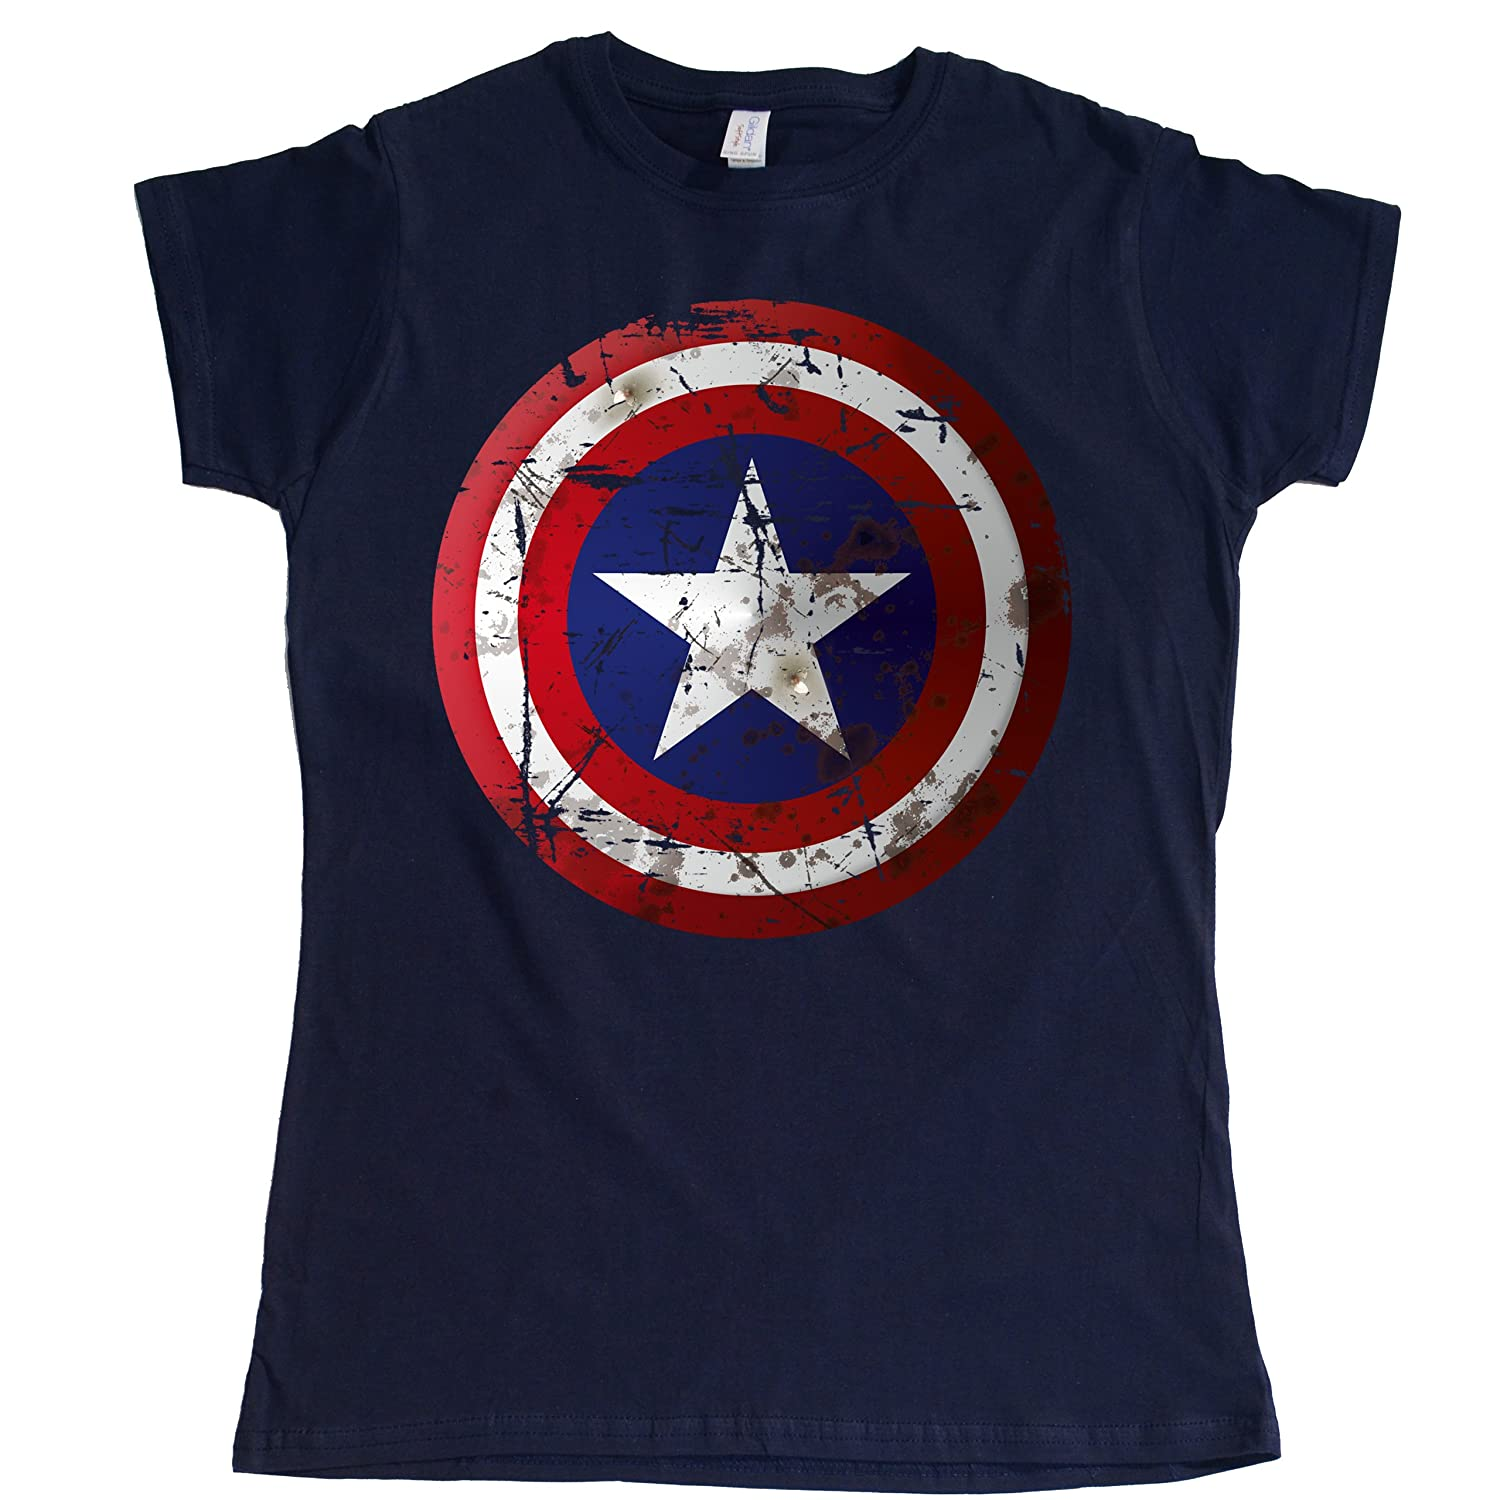 Stooble Womens's America Shield T-Shirt Stooble - 1ClickPrint